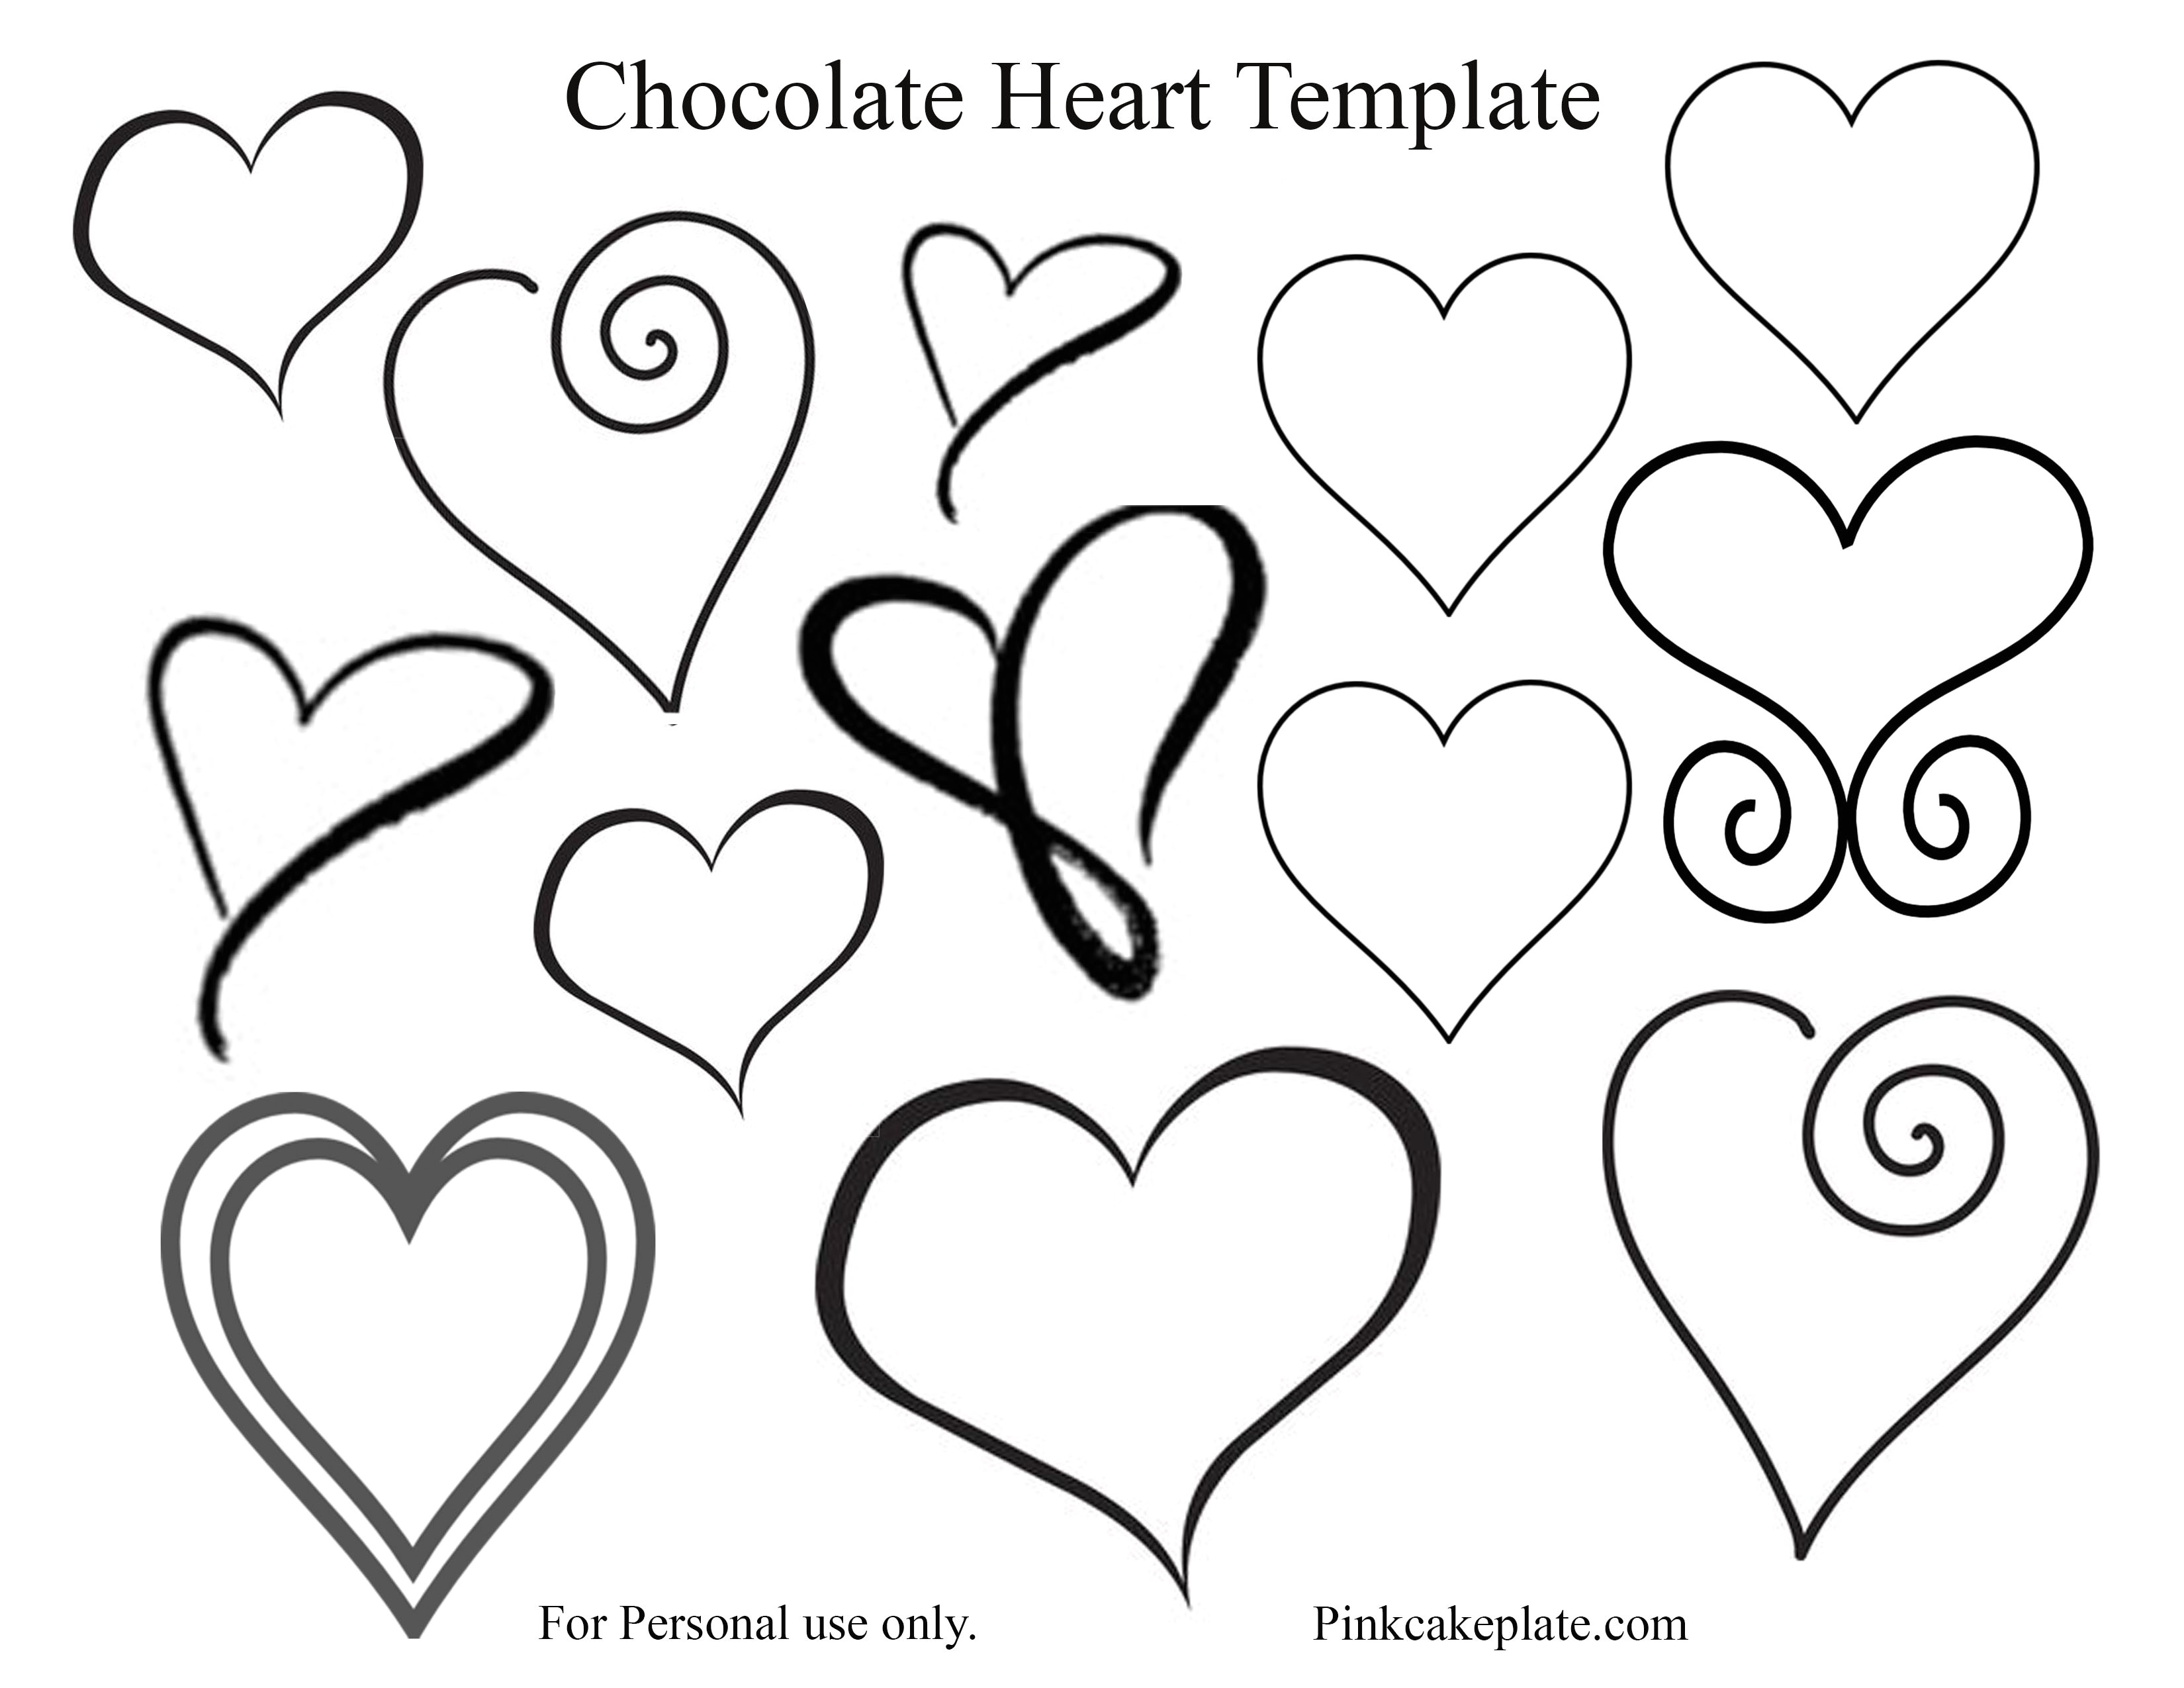 chocolate heart template 2